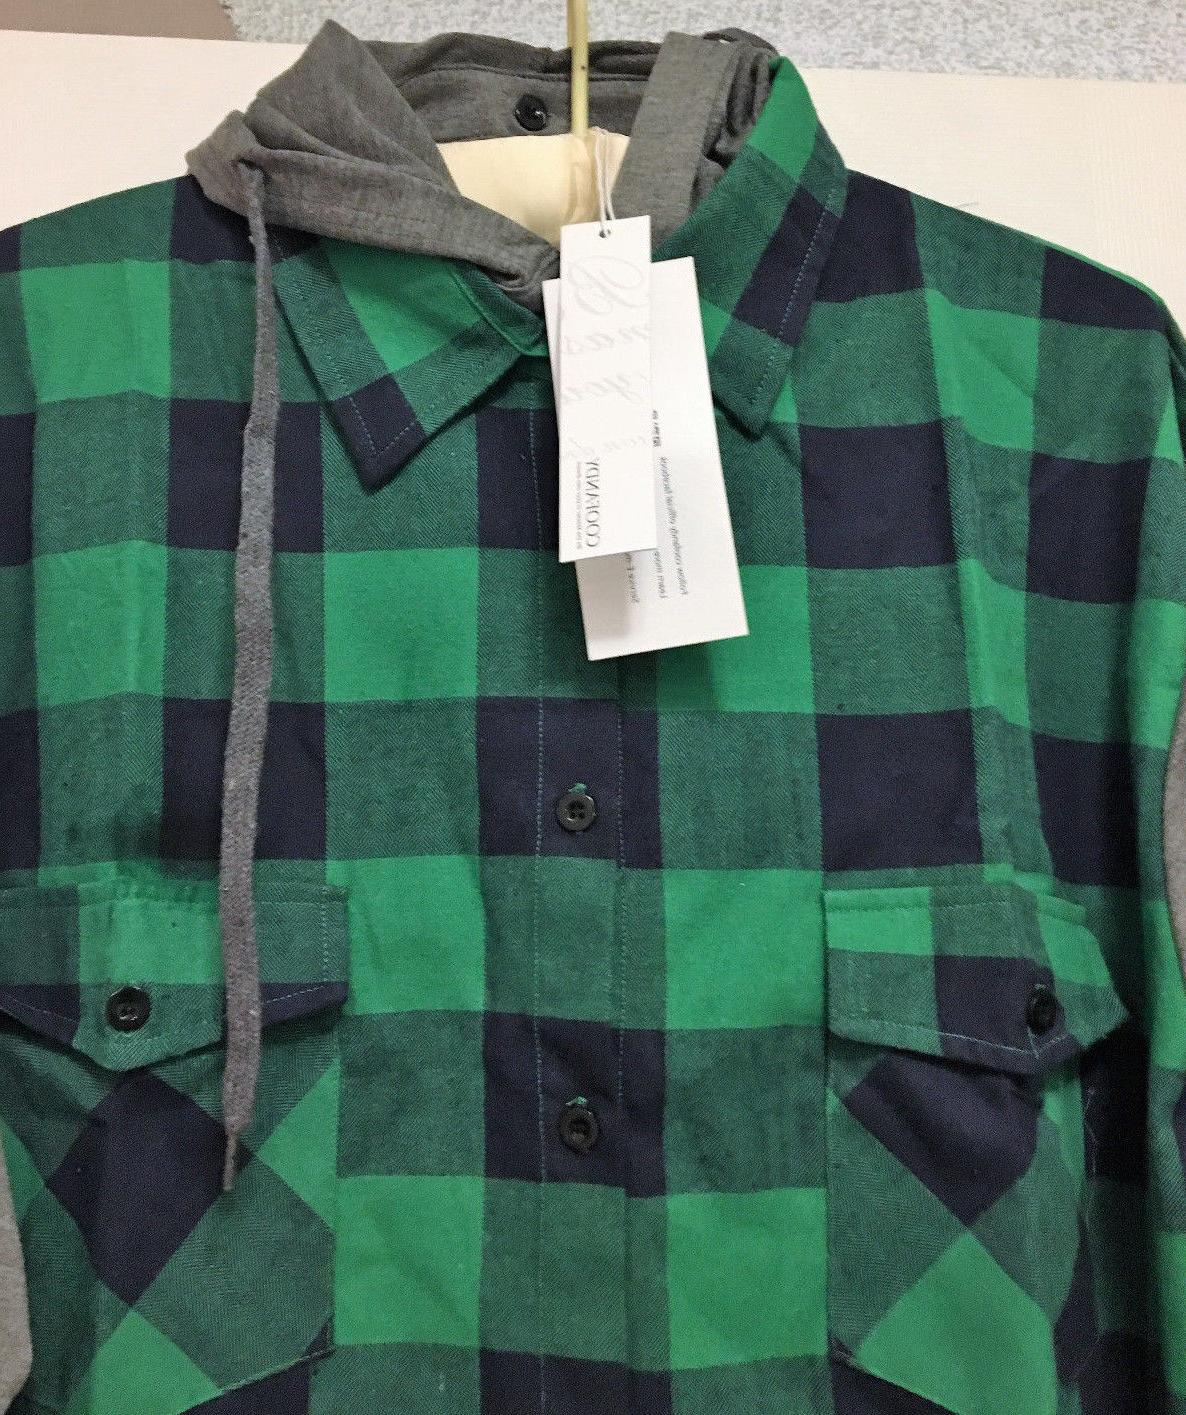 COOFANDY Plaid Shirt, Size MSRP $35.00